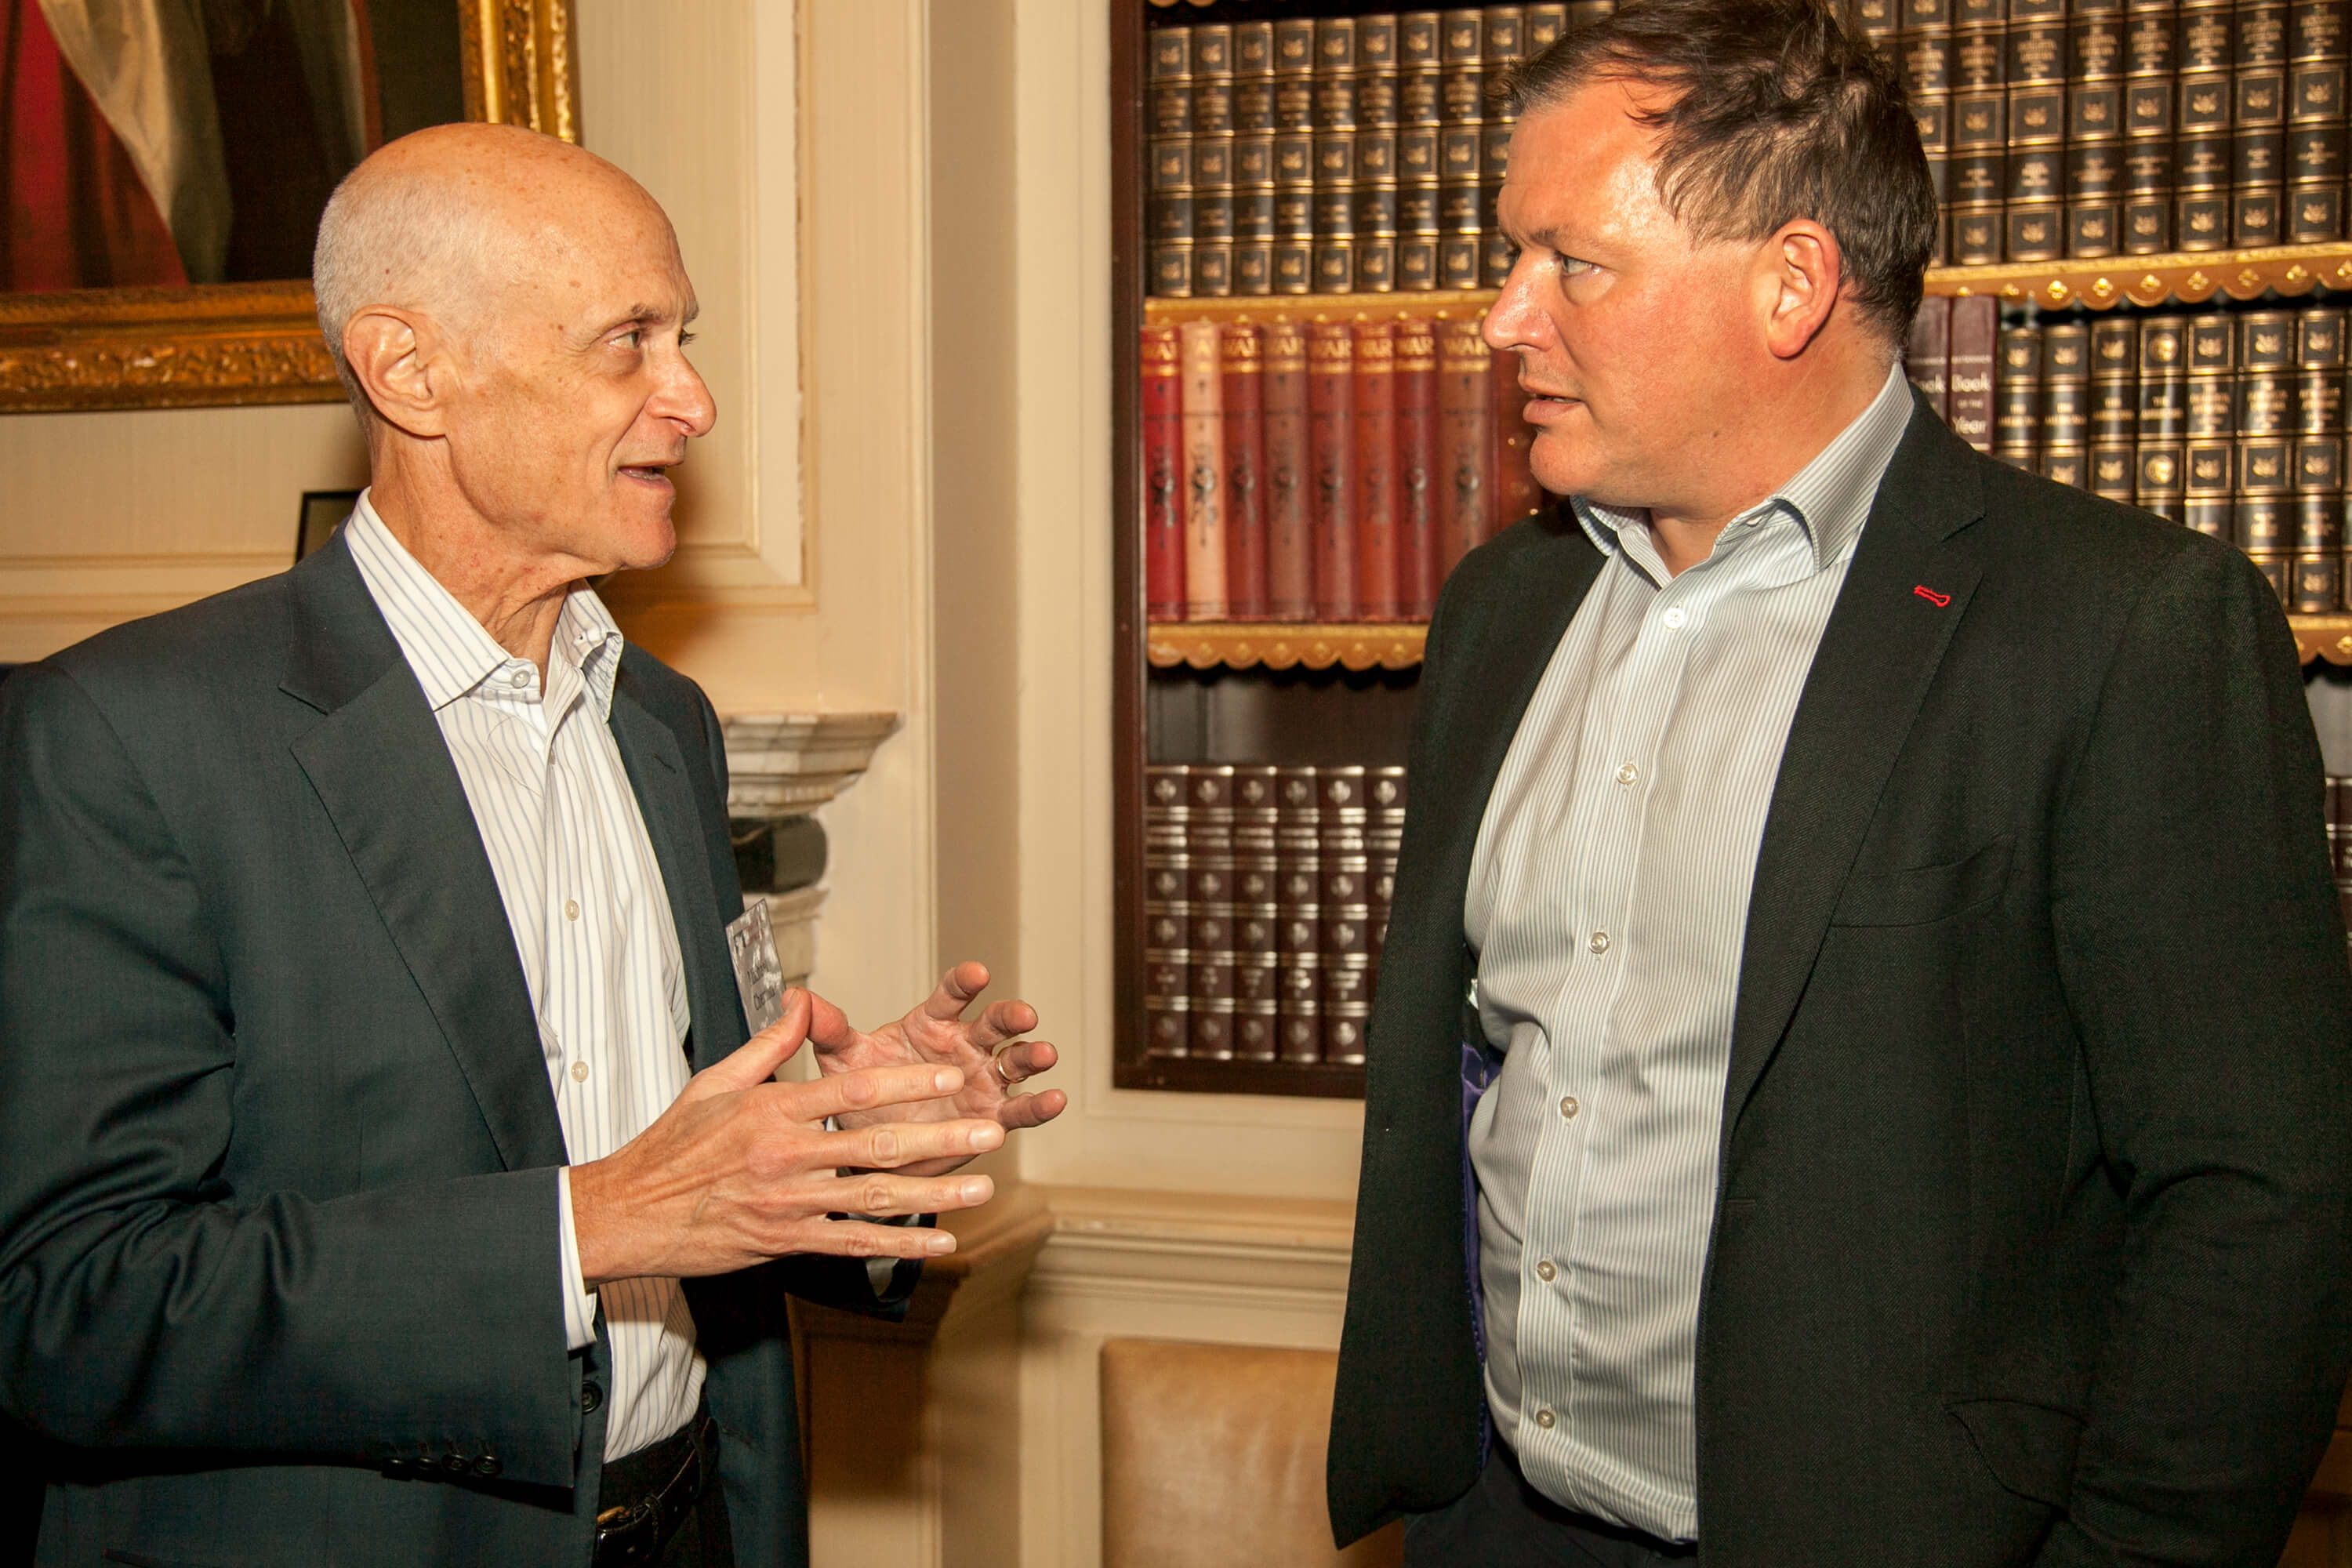 Michael Chertoff and Damian Collins. Credit: Silver Apples Photography. Transatlantic Working Group.